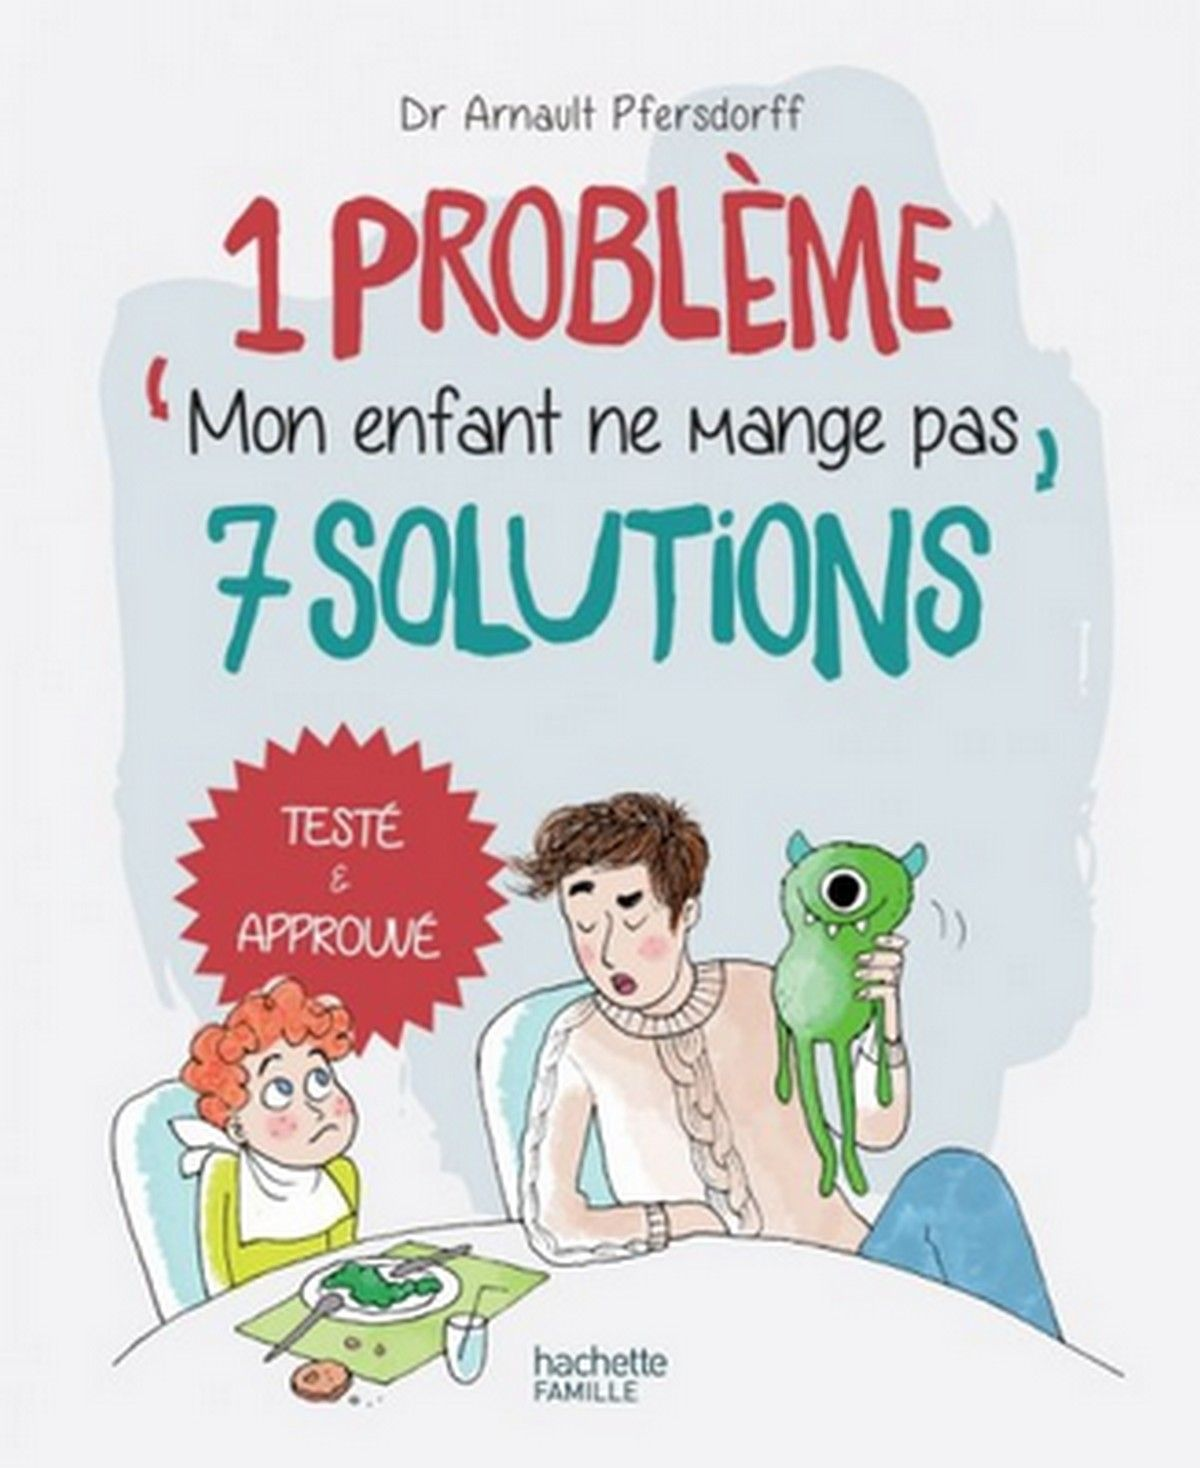 Mon Enfant Ne Veut Pas Manger Https T Co Oomqwcfnwv Https T Co I3zyrvn15o Books Mang Good Books